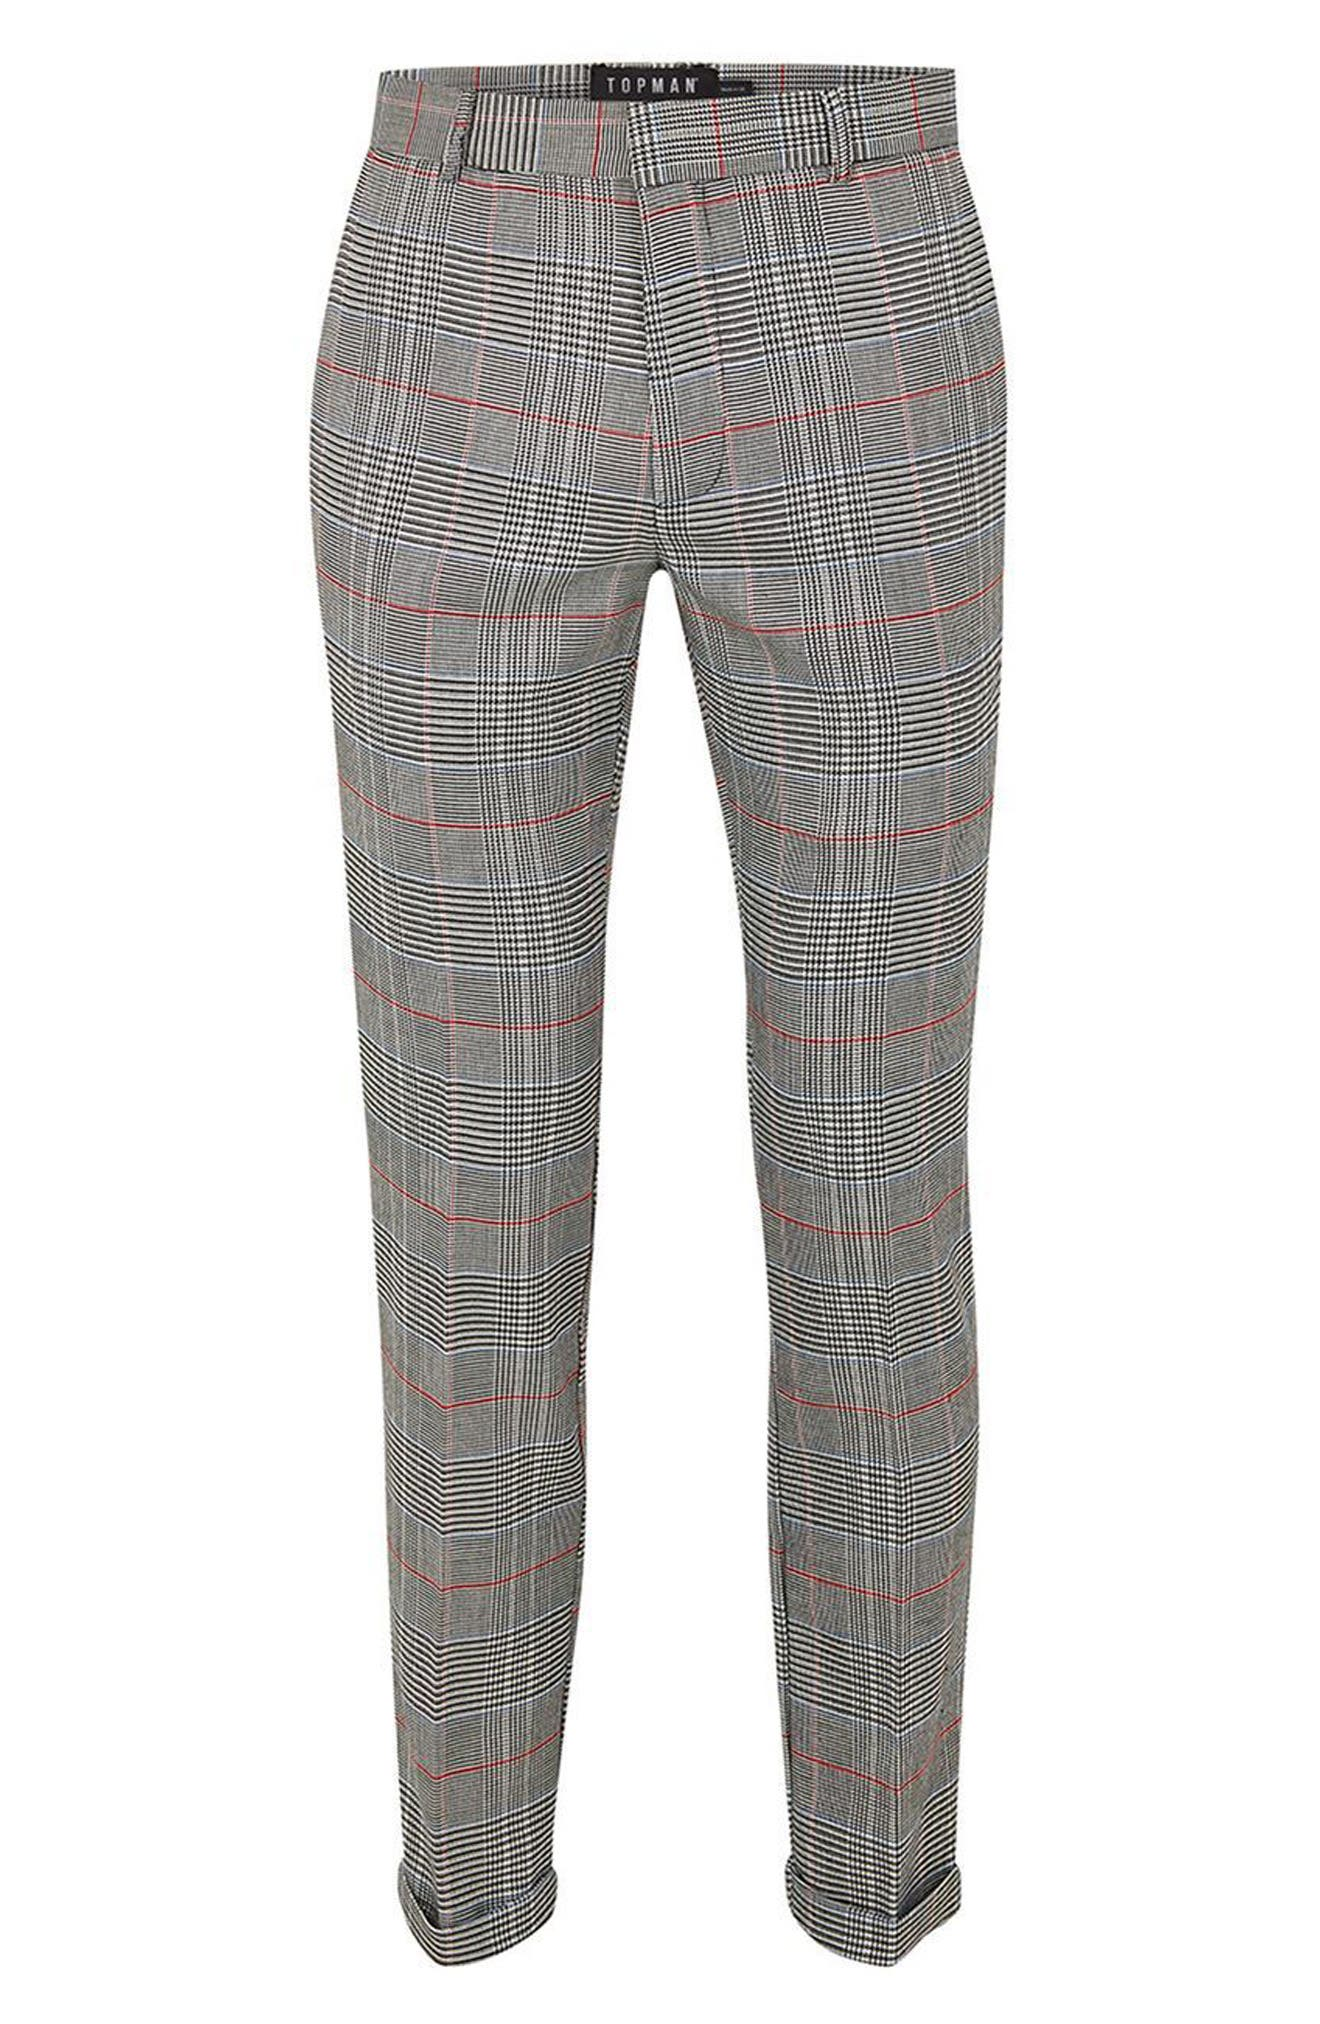 Skinny Fit Check Trousers,                             Alternate thumbnail 4, color,                             020